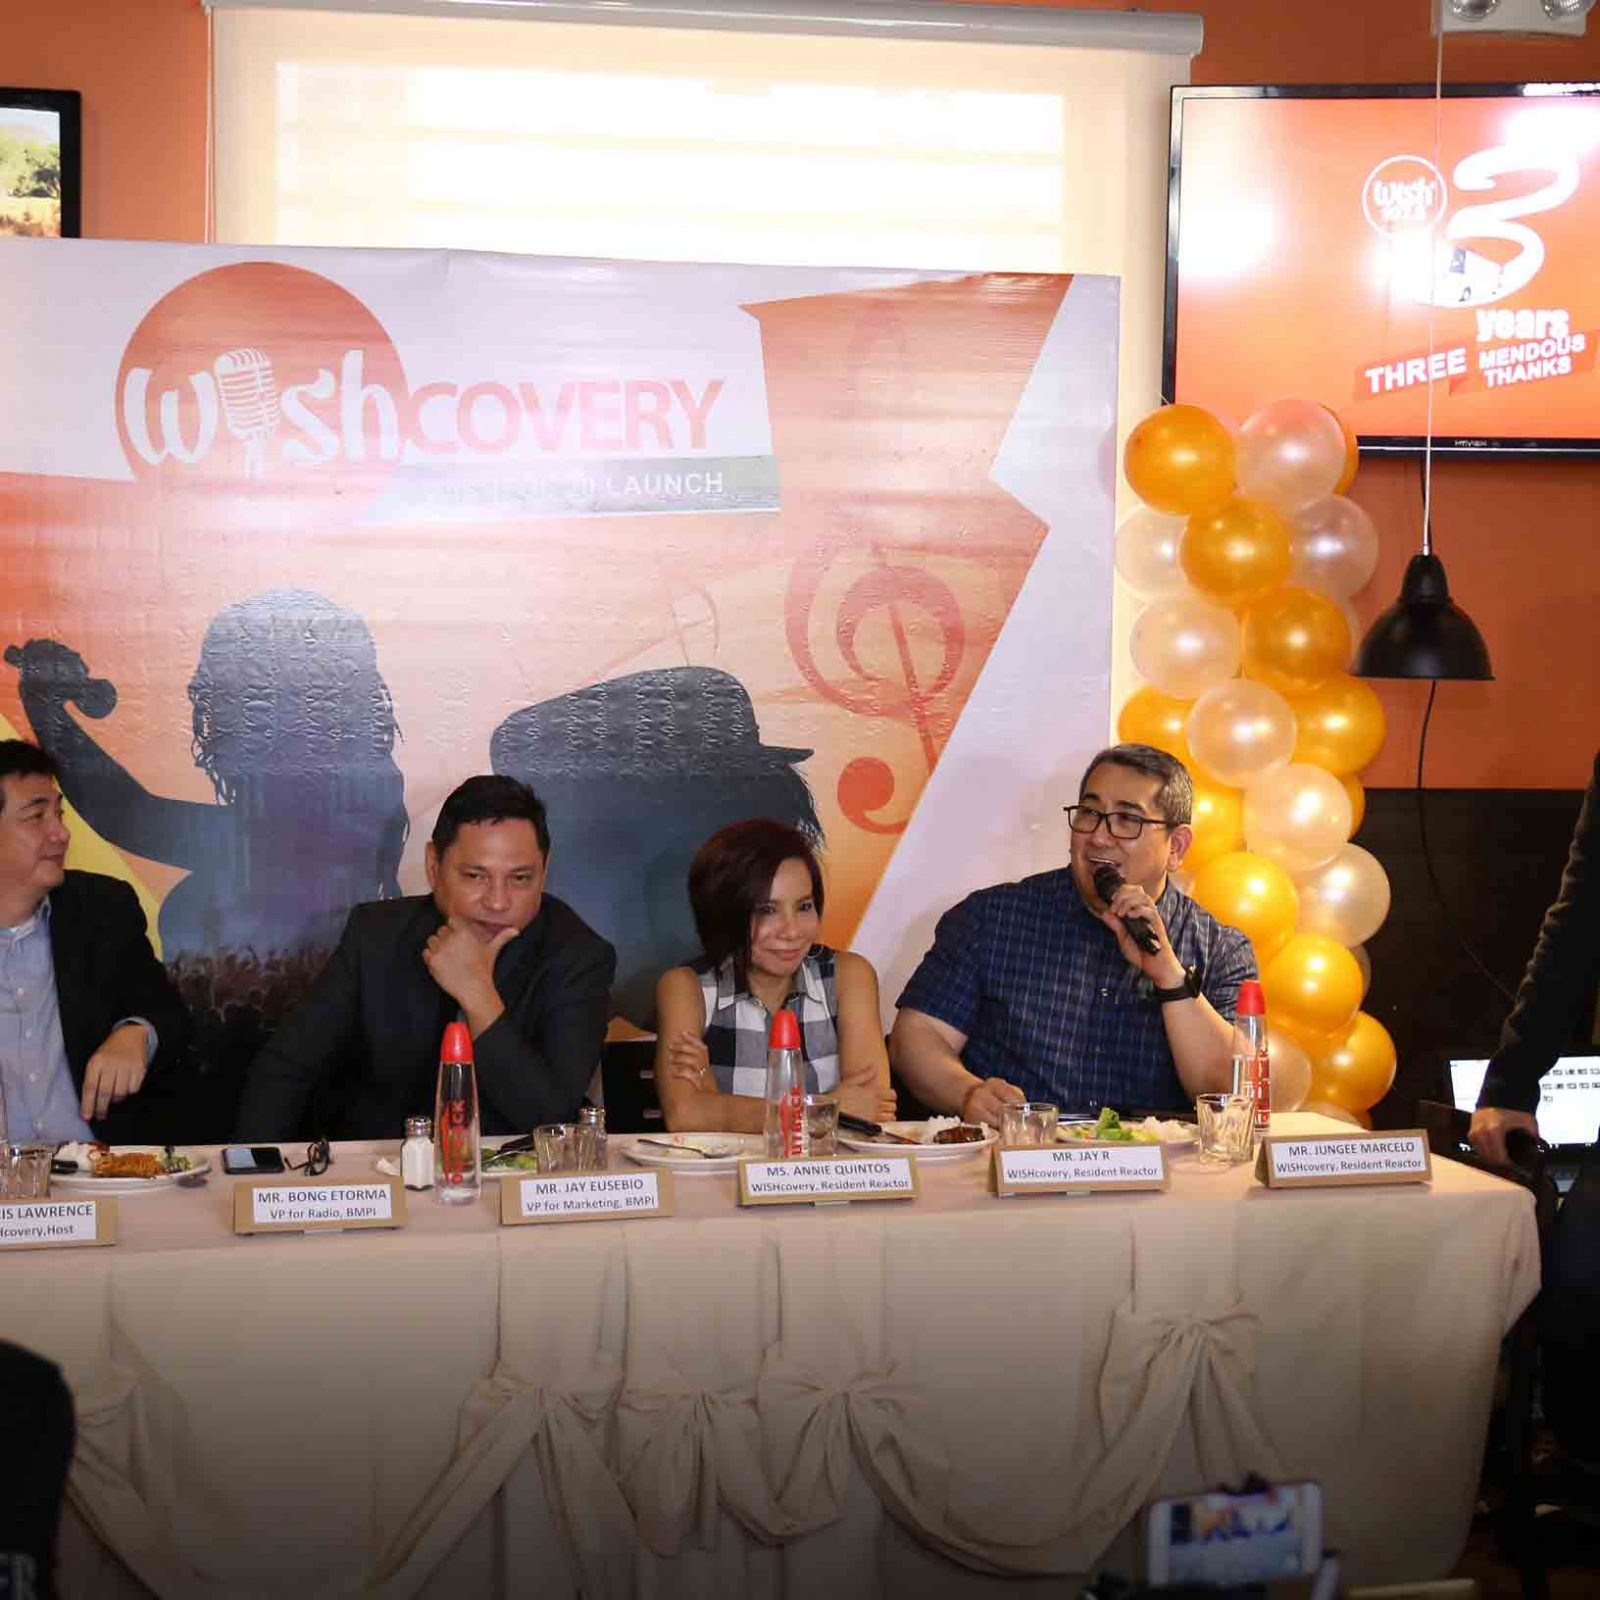 (L-R) BMPI VP for Radio Bong Etorma, VP for TV and Marketing Mr. Jay Eusebio, Ms. Annie Quinto, and Mr. Jungee Marcelo get interviewed by Wish 107.5's Operations Supervisor Mr. Jeck Deocampo during the Wishcovery press conference held at the Outback Steakhouse.   (Photo courtesy of Photoville International)